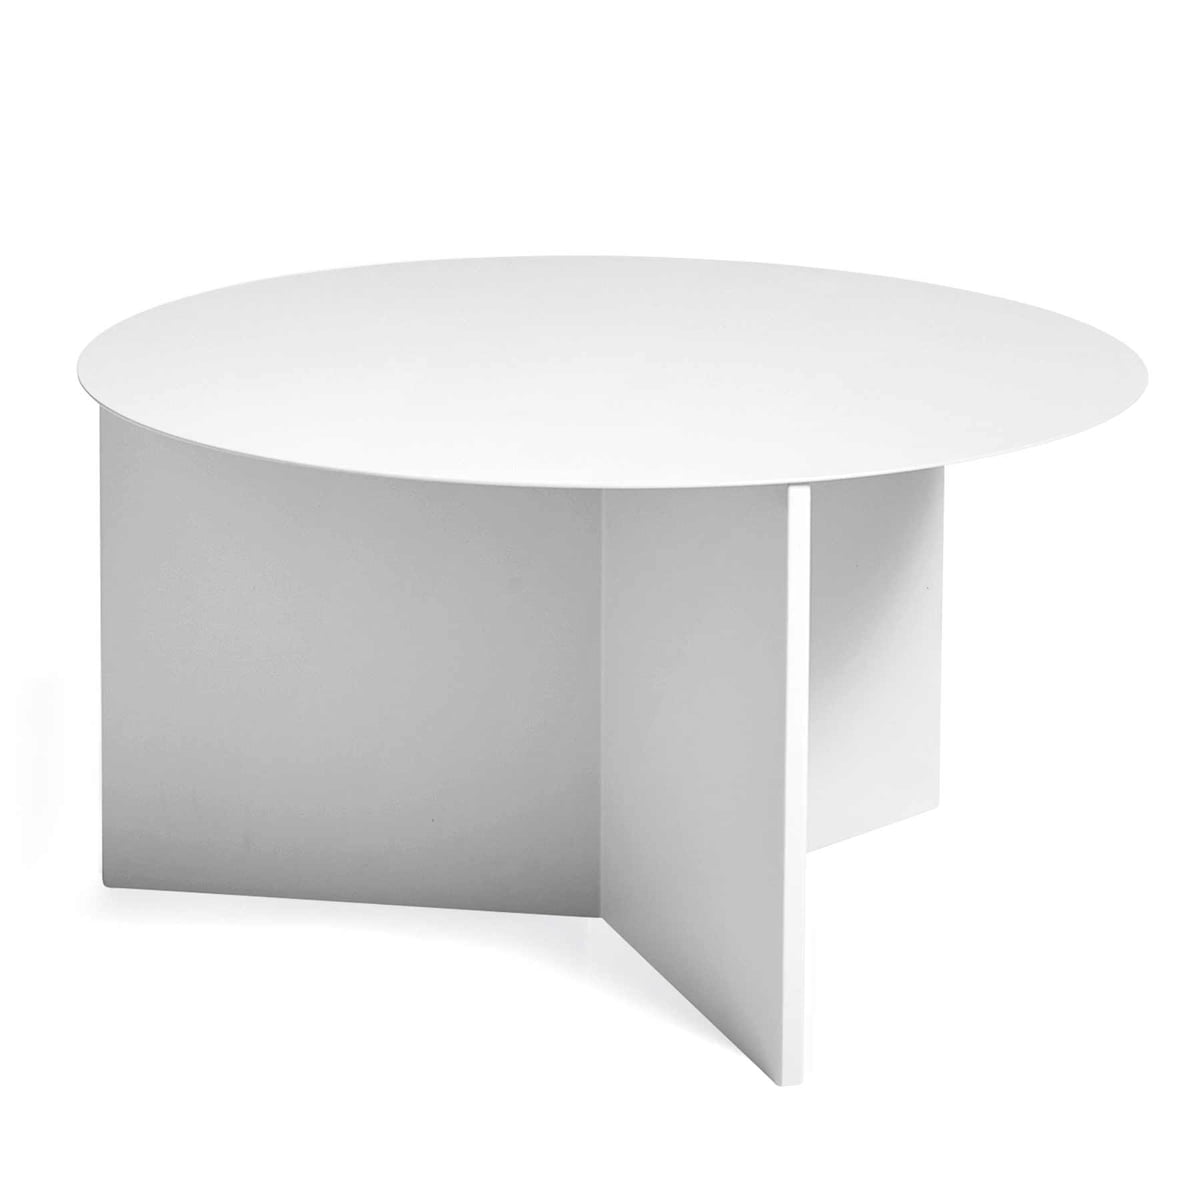 beistelltisch hay slit table xl by hay connox shop. Black Bedroom Furniture Sets. Home Design Ideas